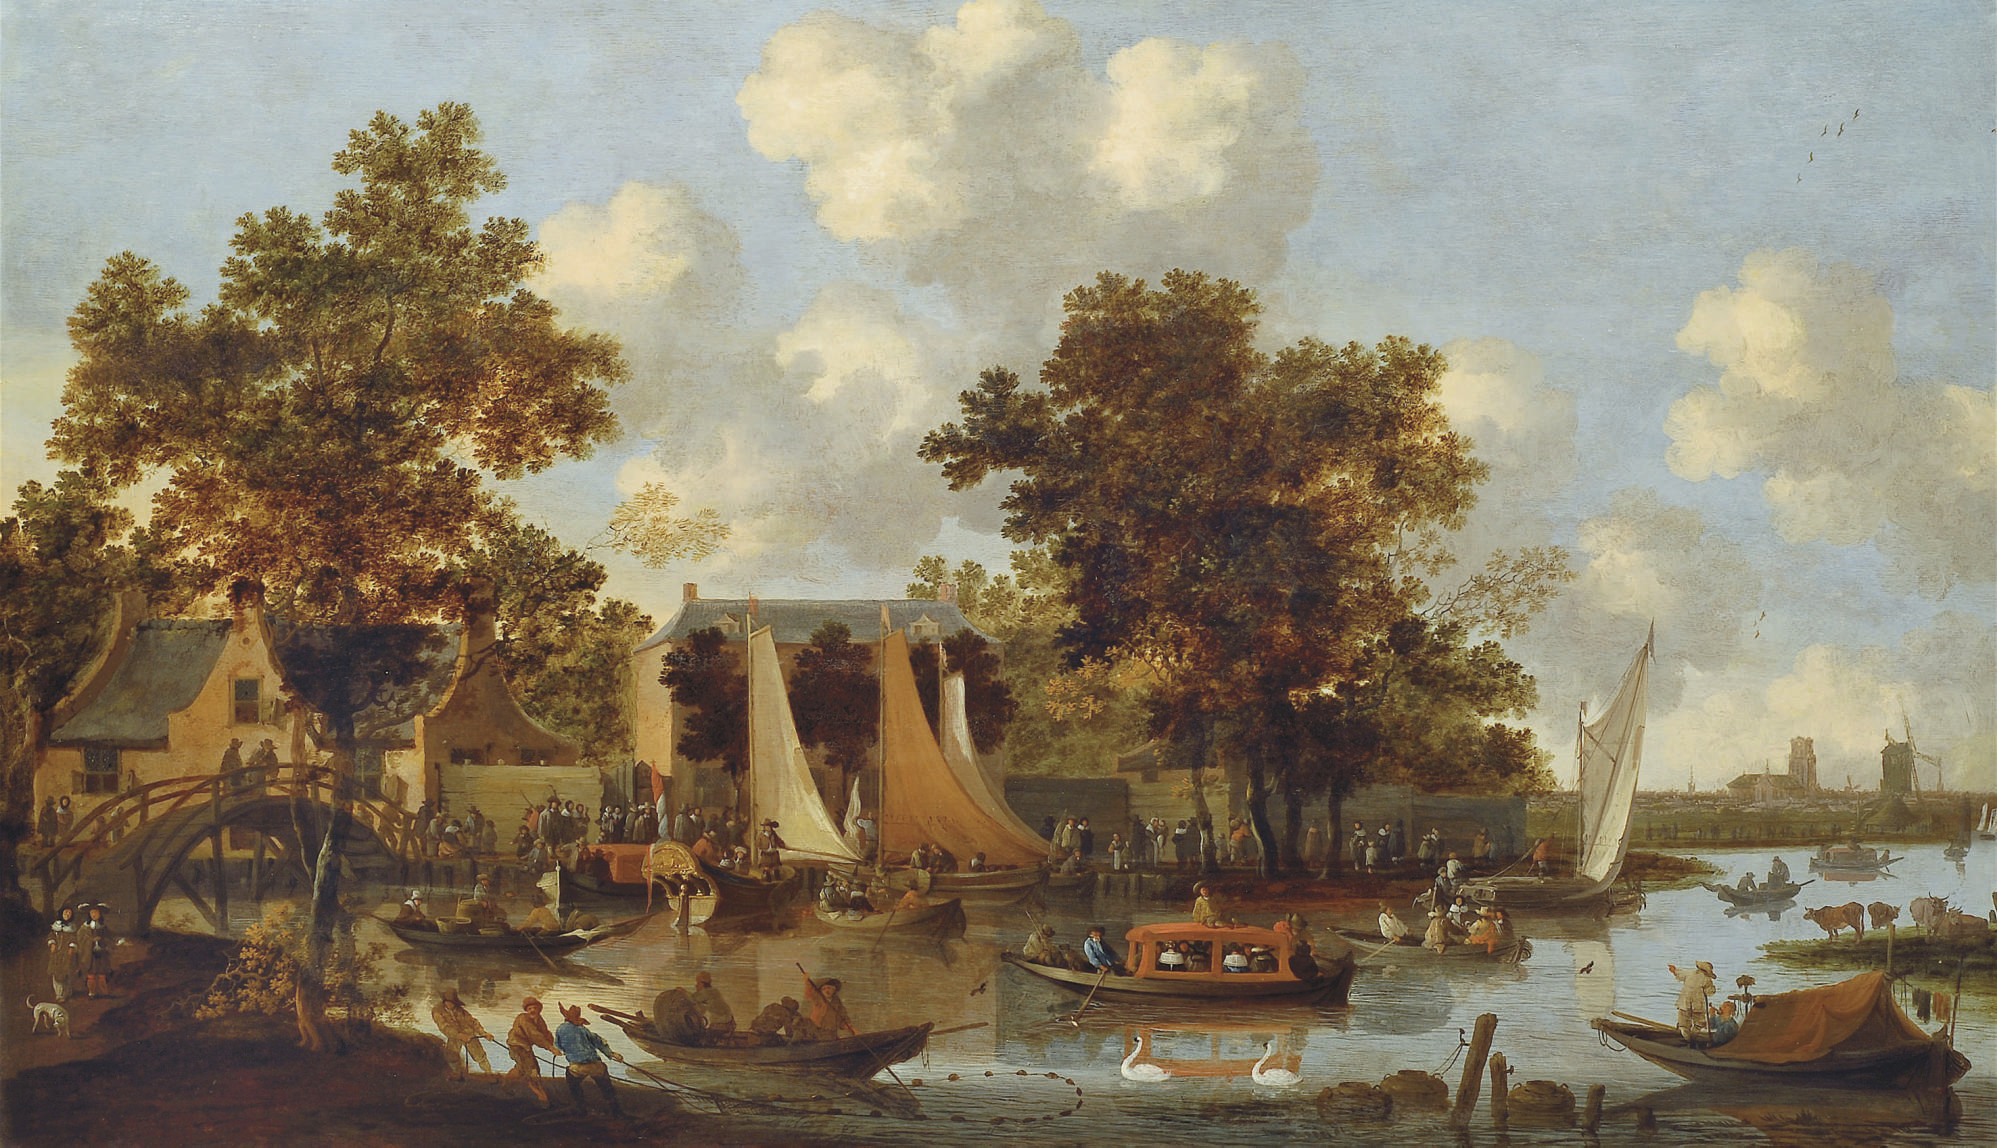 A view of the 'Zwaenhals' near Rotterdam with numerous figures in boats and on foot